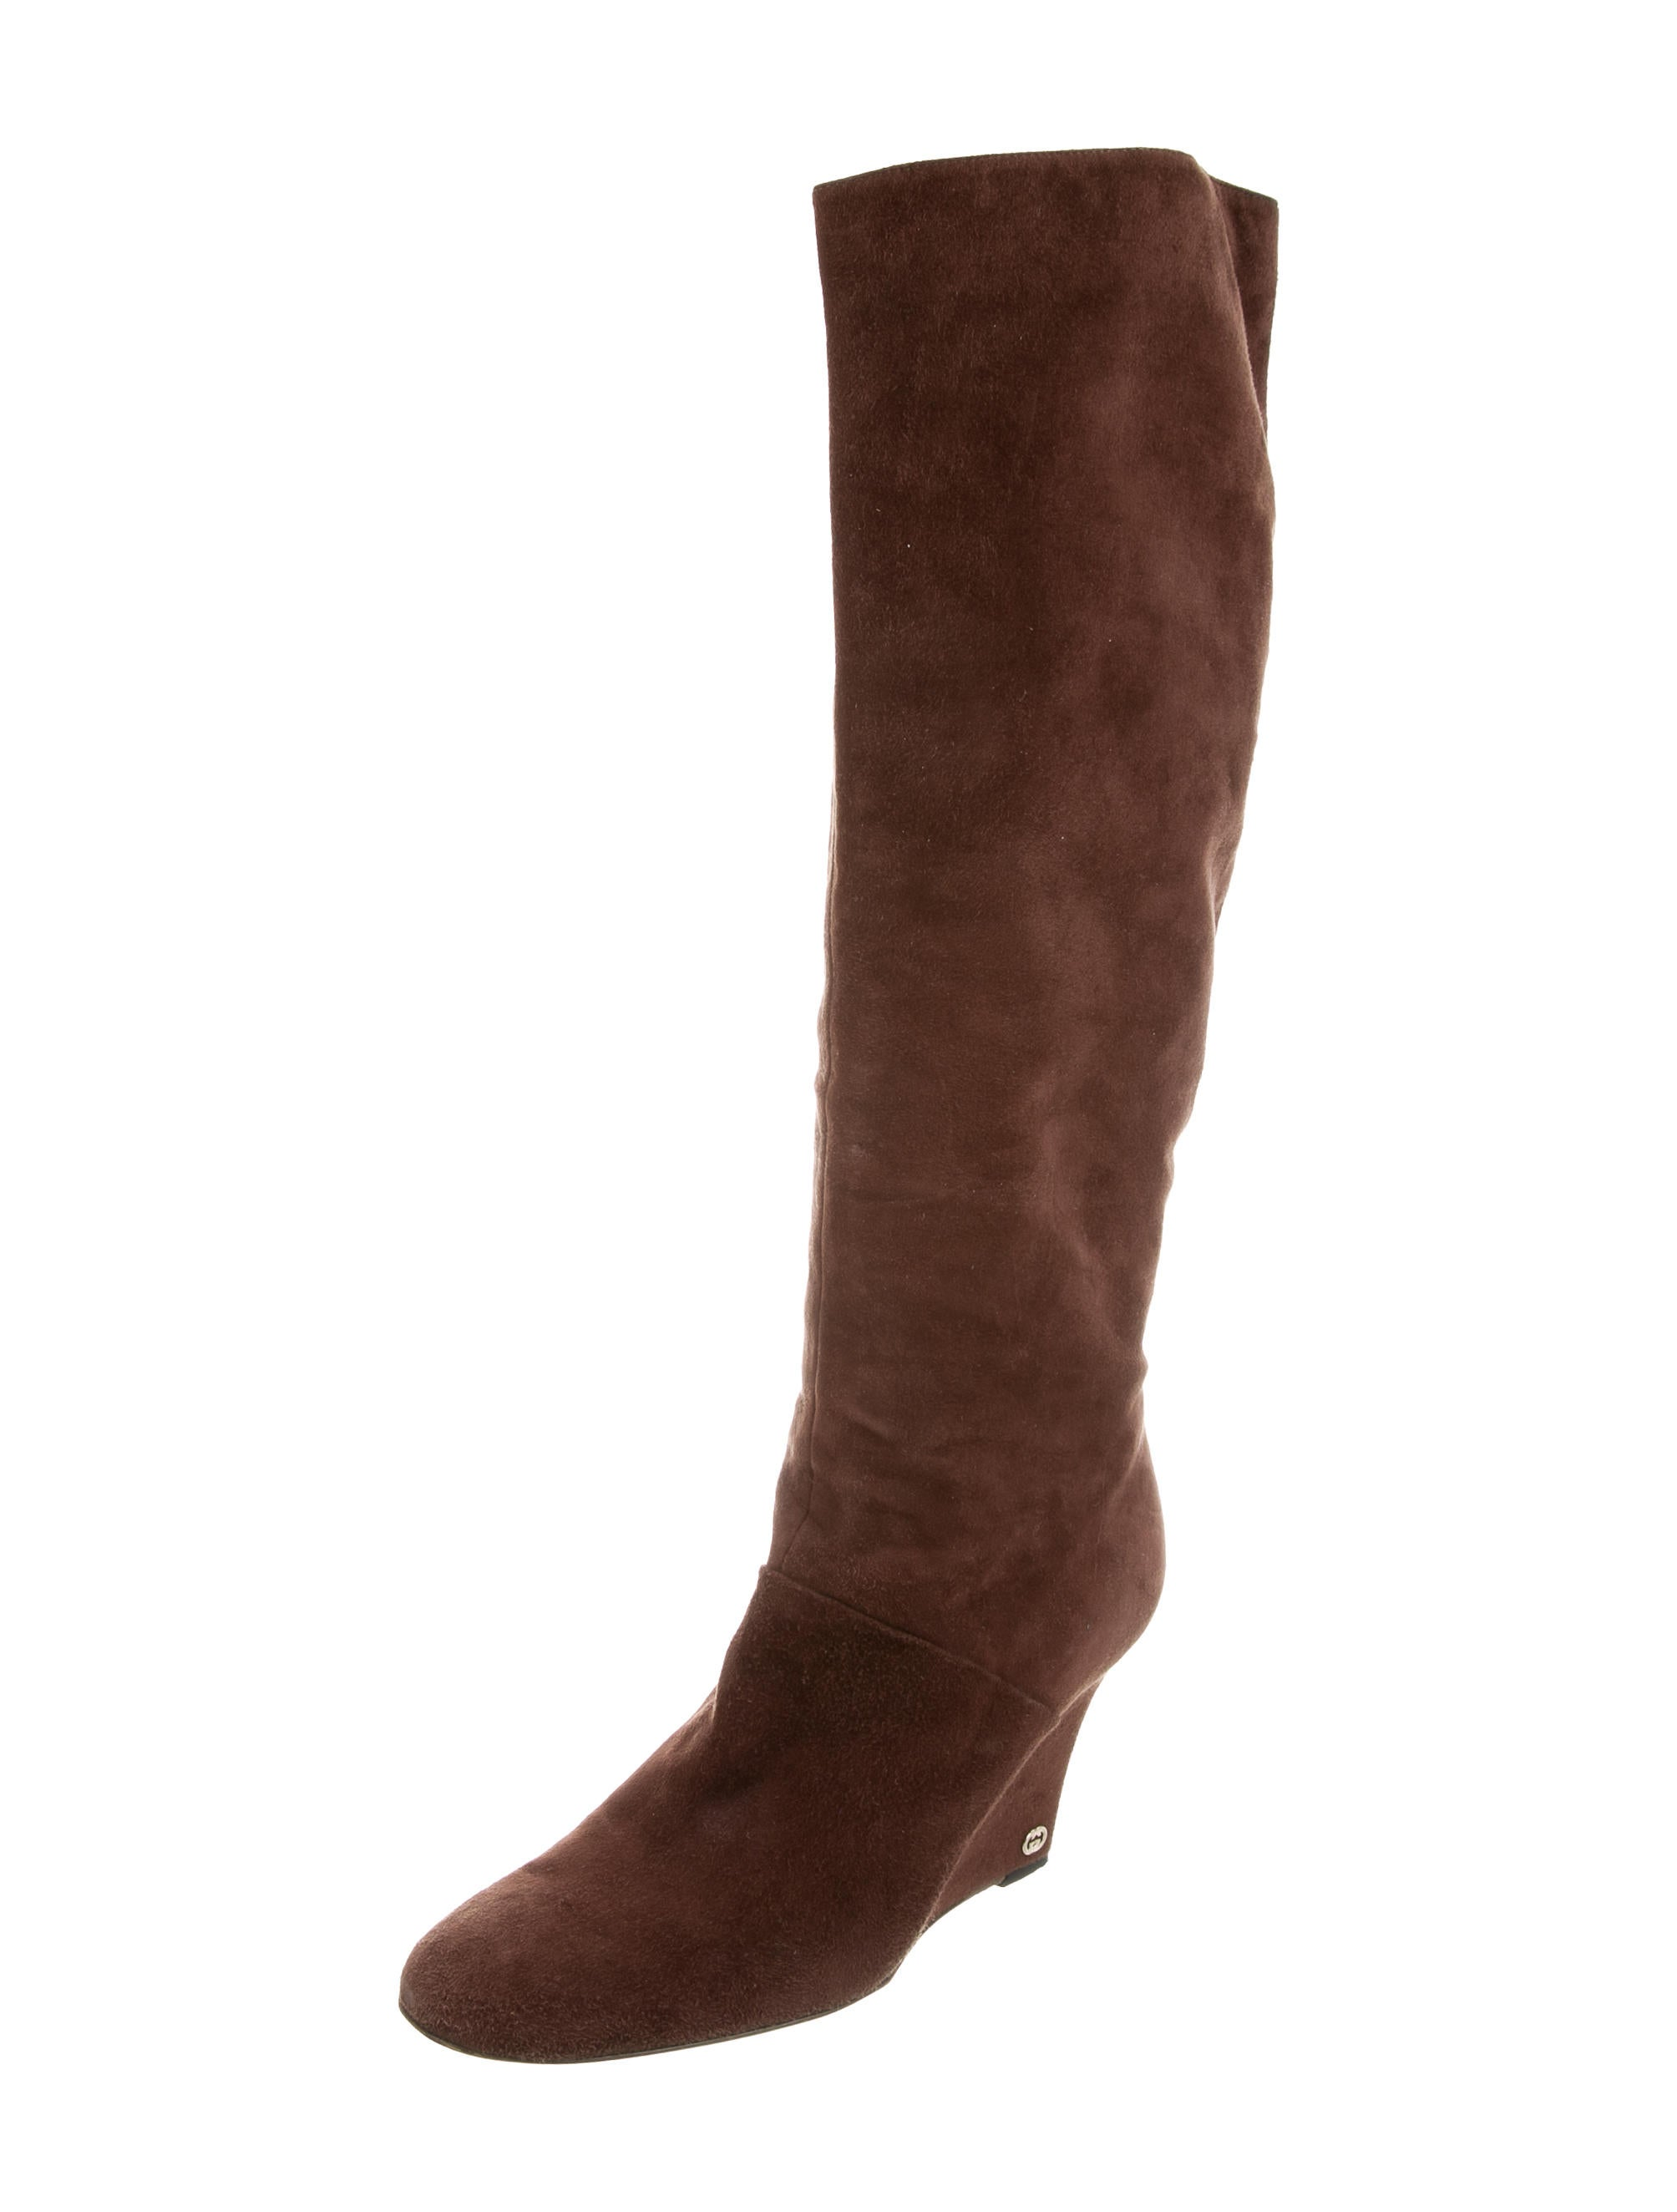 gucci suede wedge boots shoes guc161666 the realreal